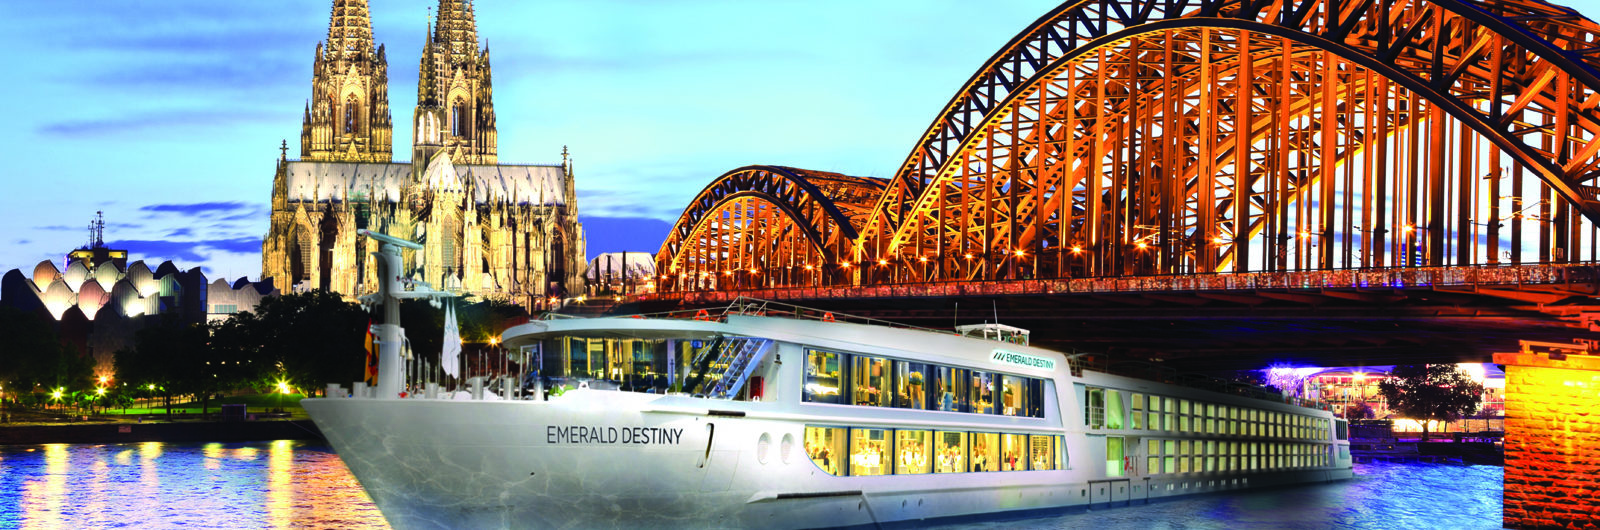 EUROPE RIVERBOATS CRUISE 2019